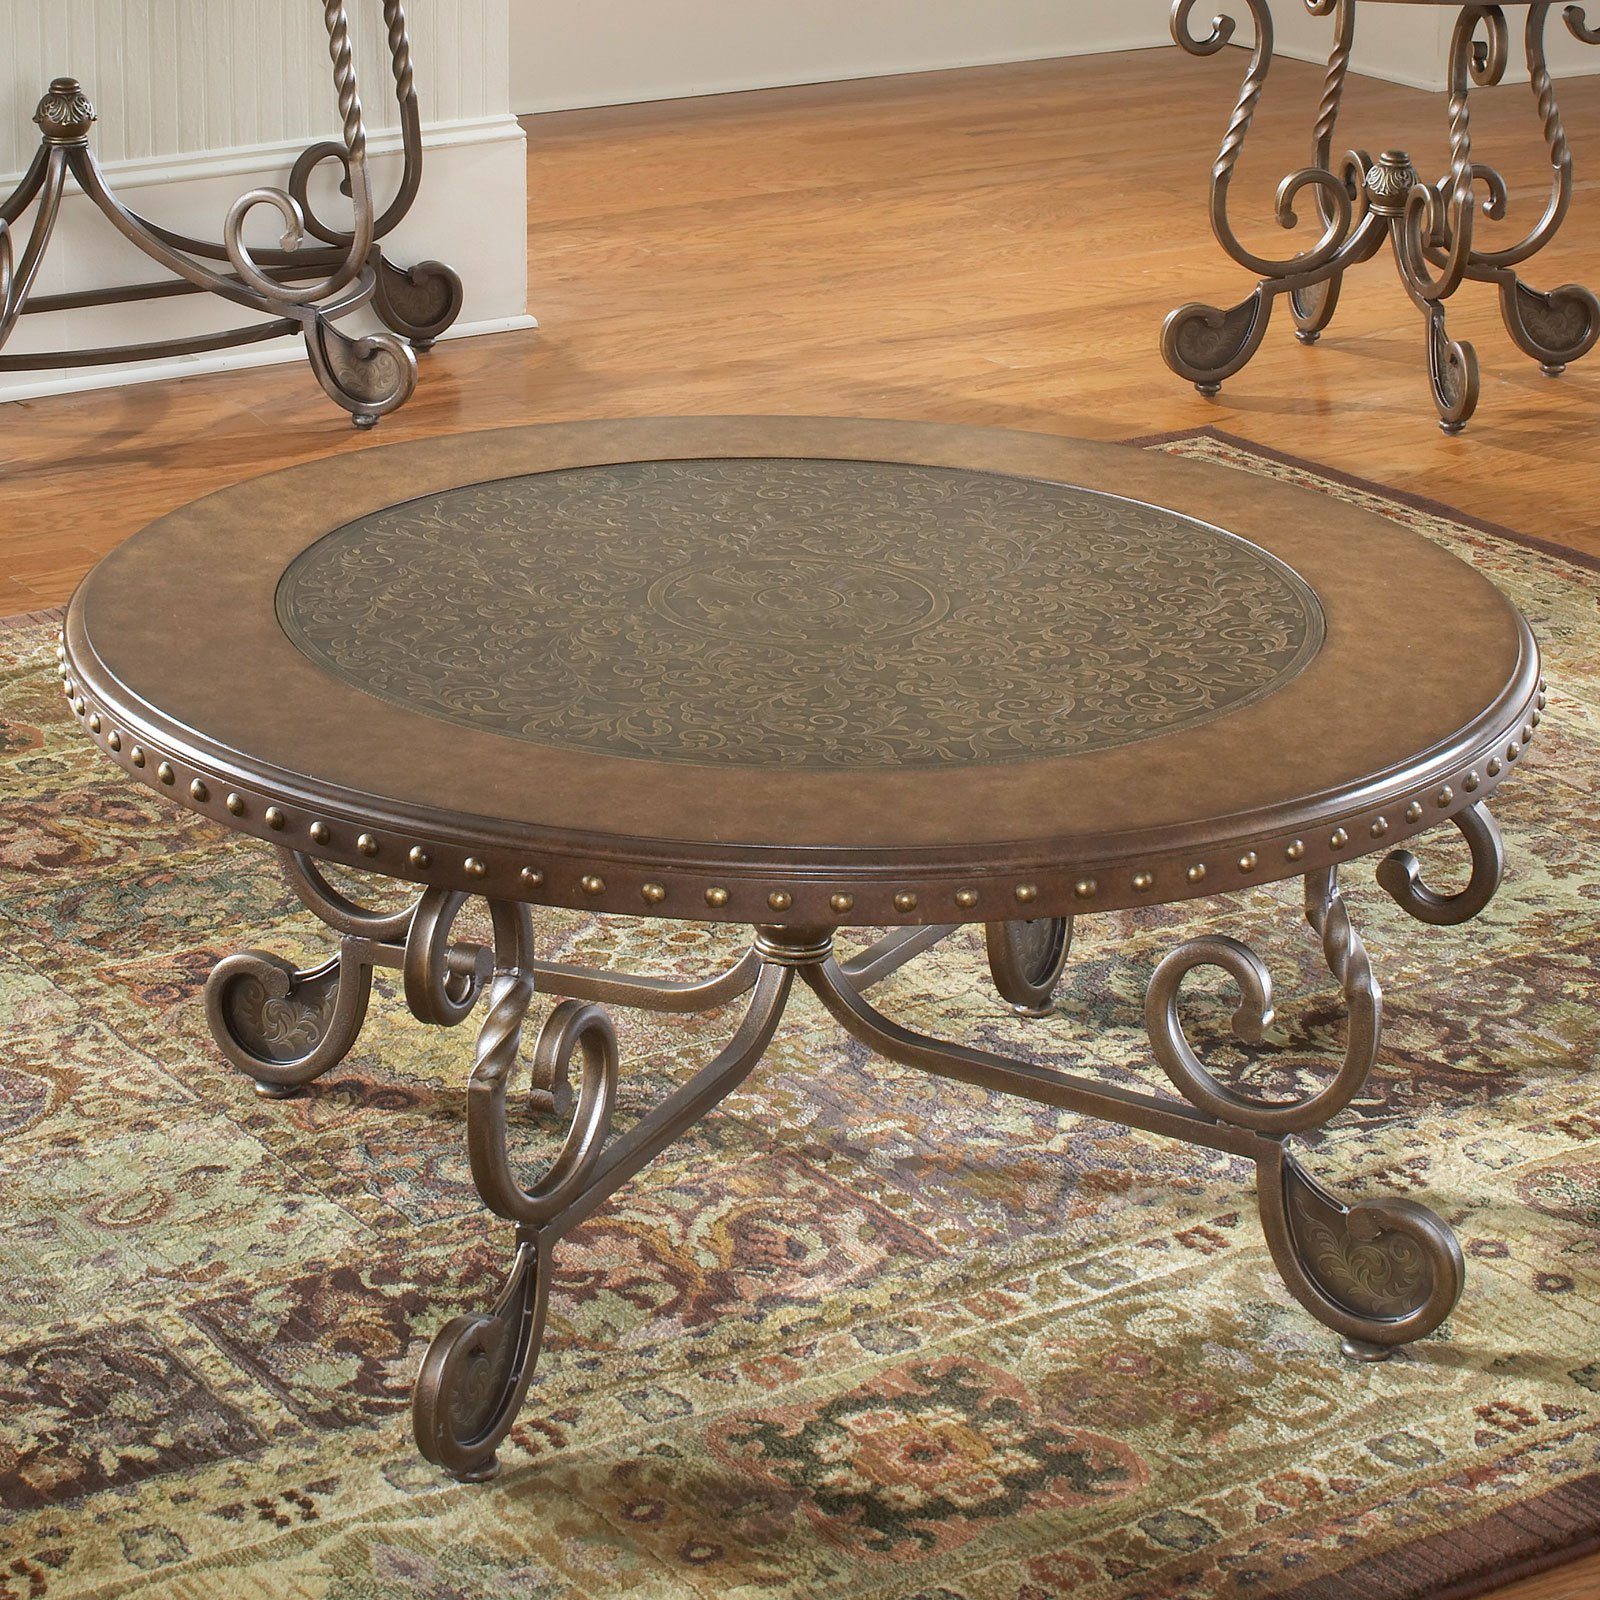 Bernards Metal Etched Round Coffee Table with Nailheads